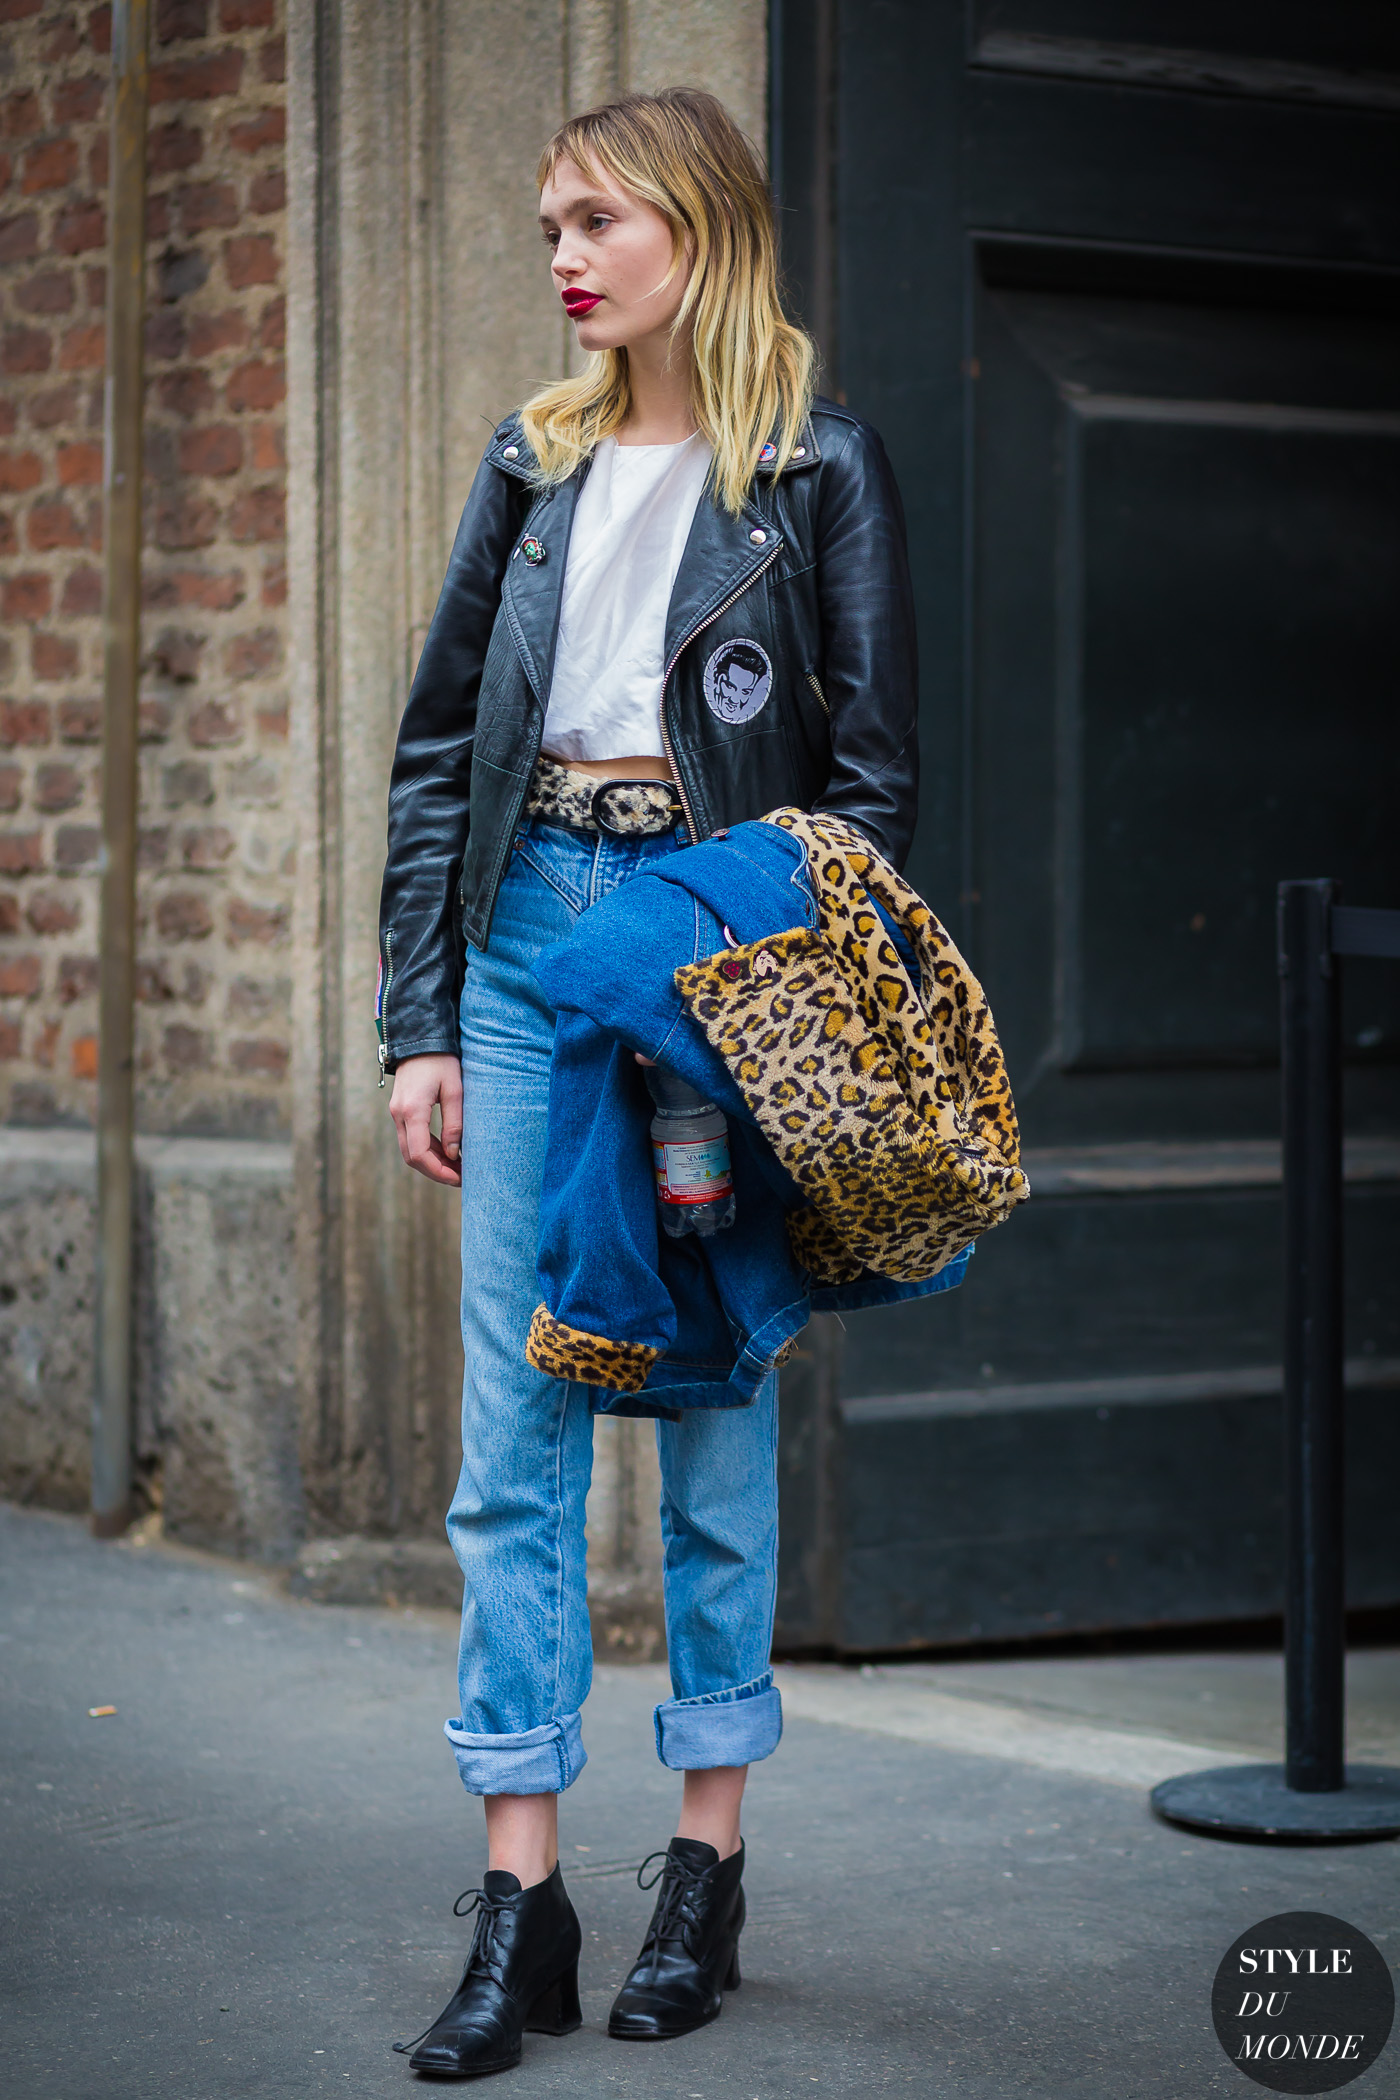 Staz Lindes Street Style Street Fashion Streetsnaps by STYLEDUMONDE Street Style Fashion Photography